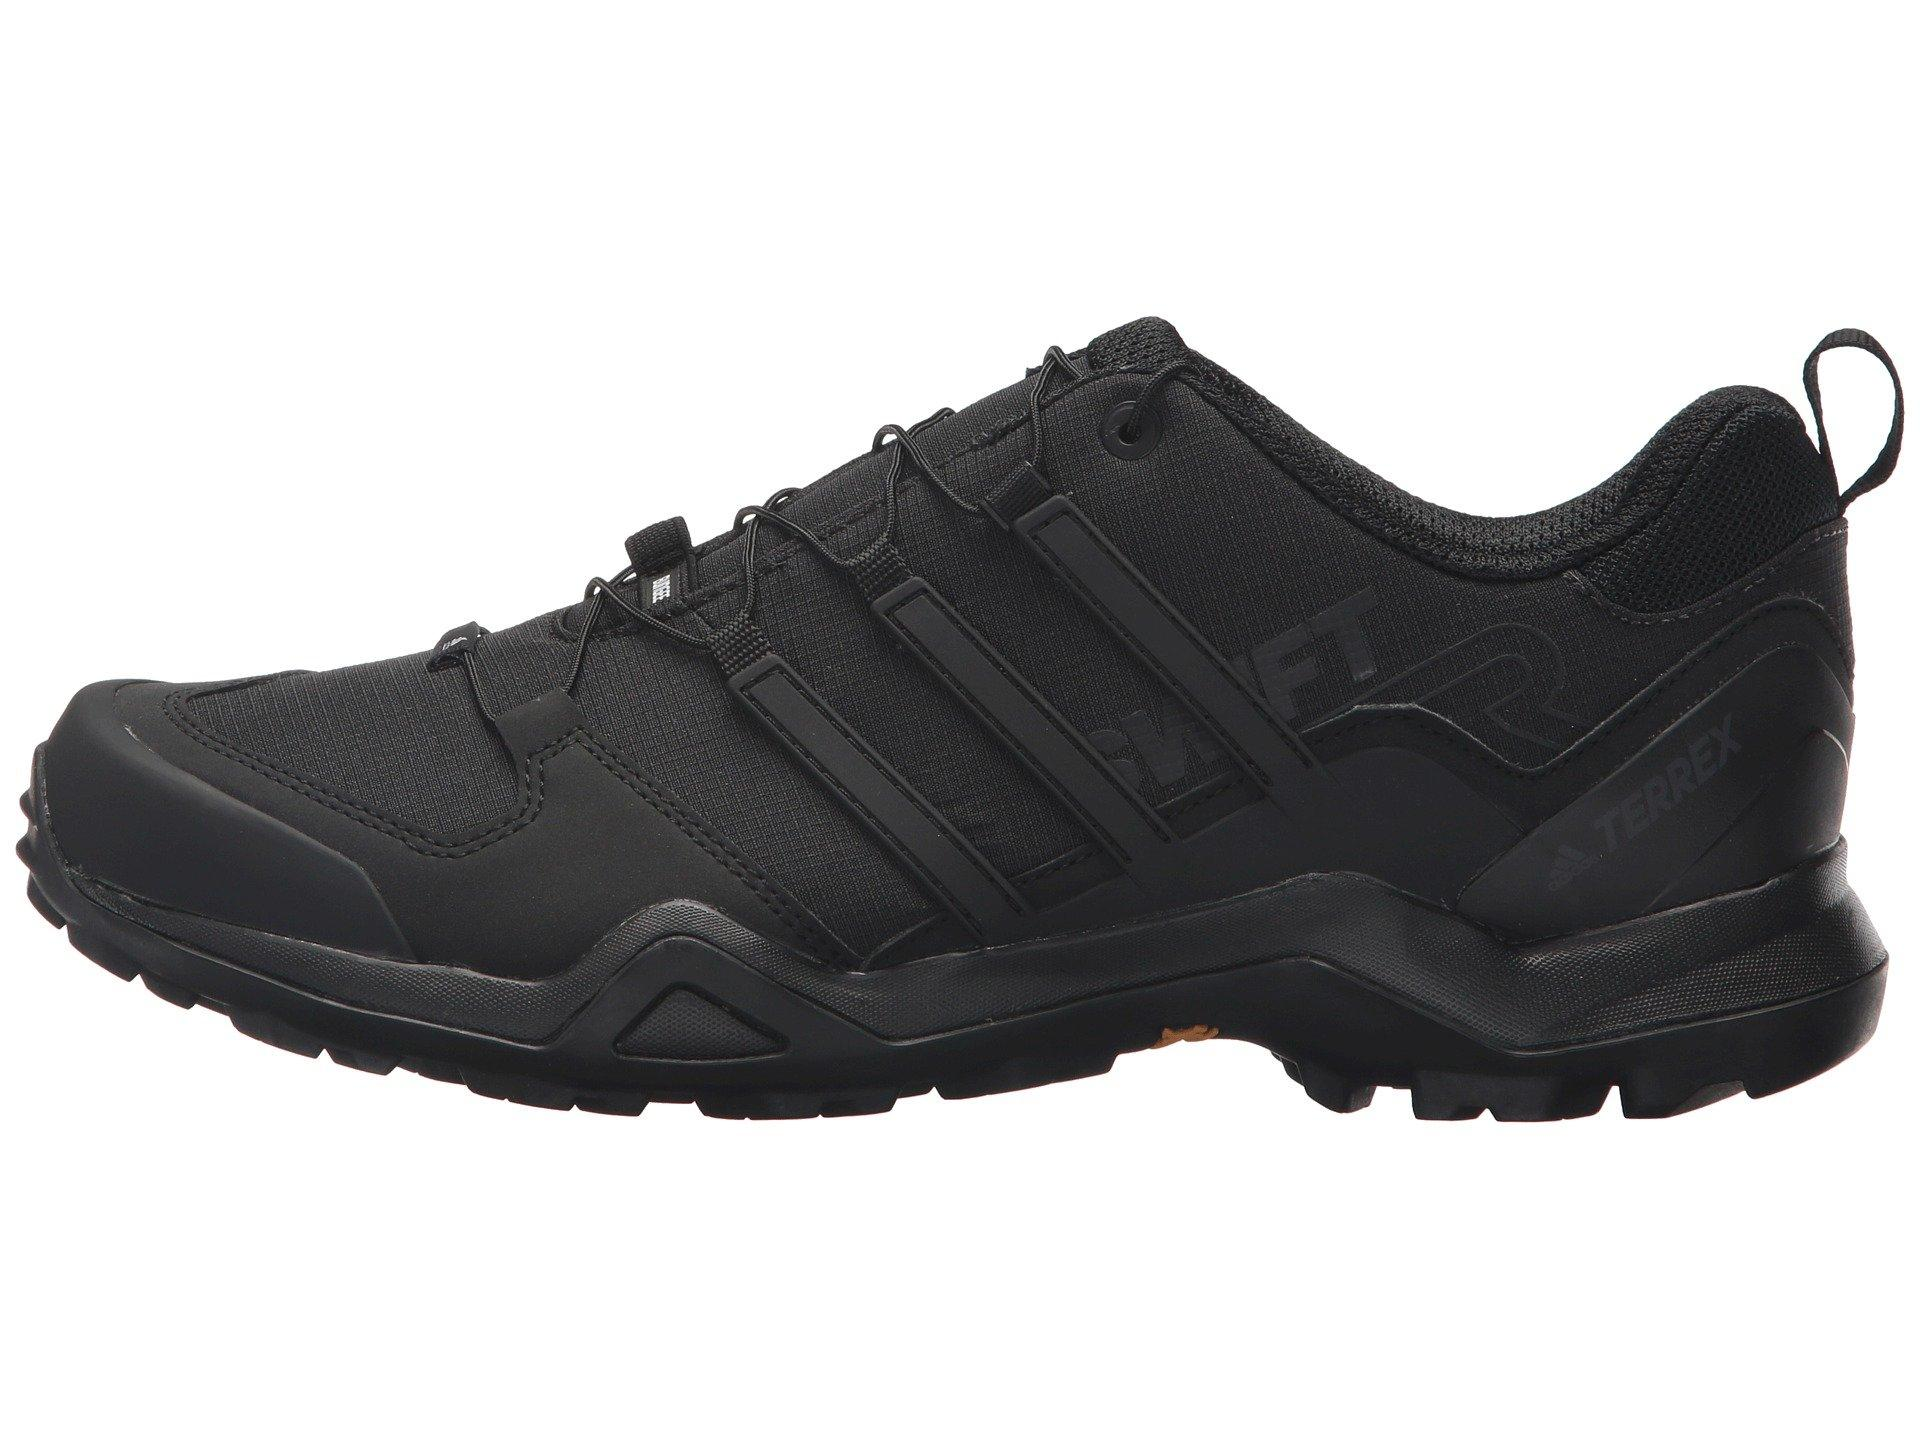 4c440cefd634b Lyst - adidas Originals Terrex Swift R2 (grey Six carbon grey Five) Men s  Climbing Shoes in Black for Men